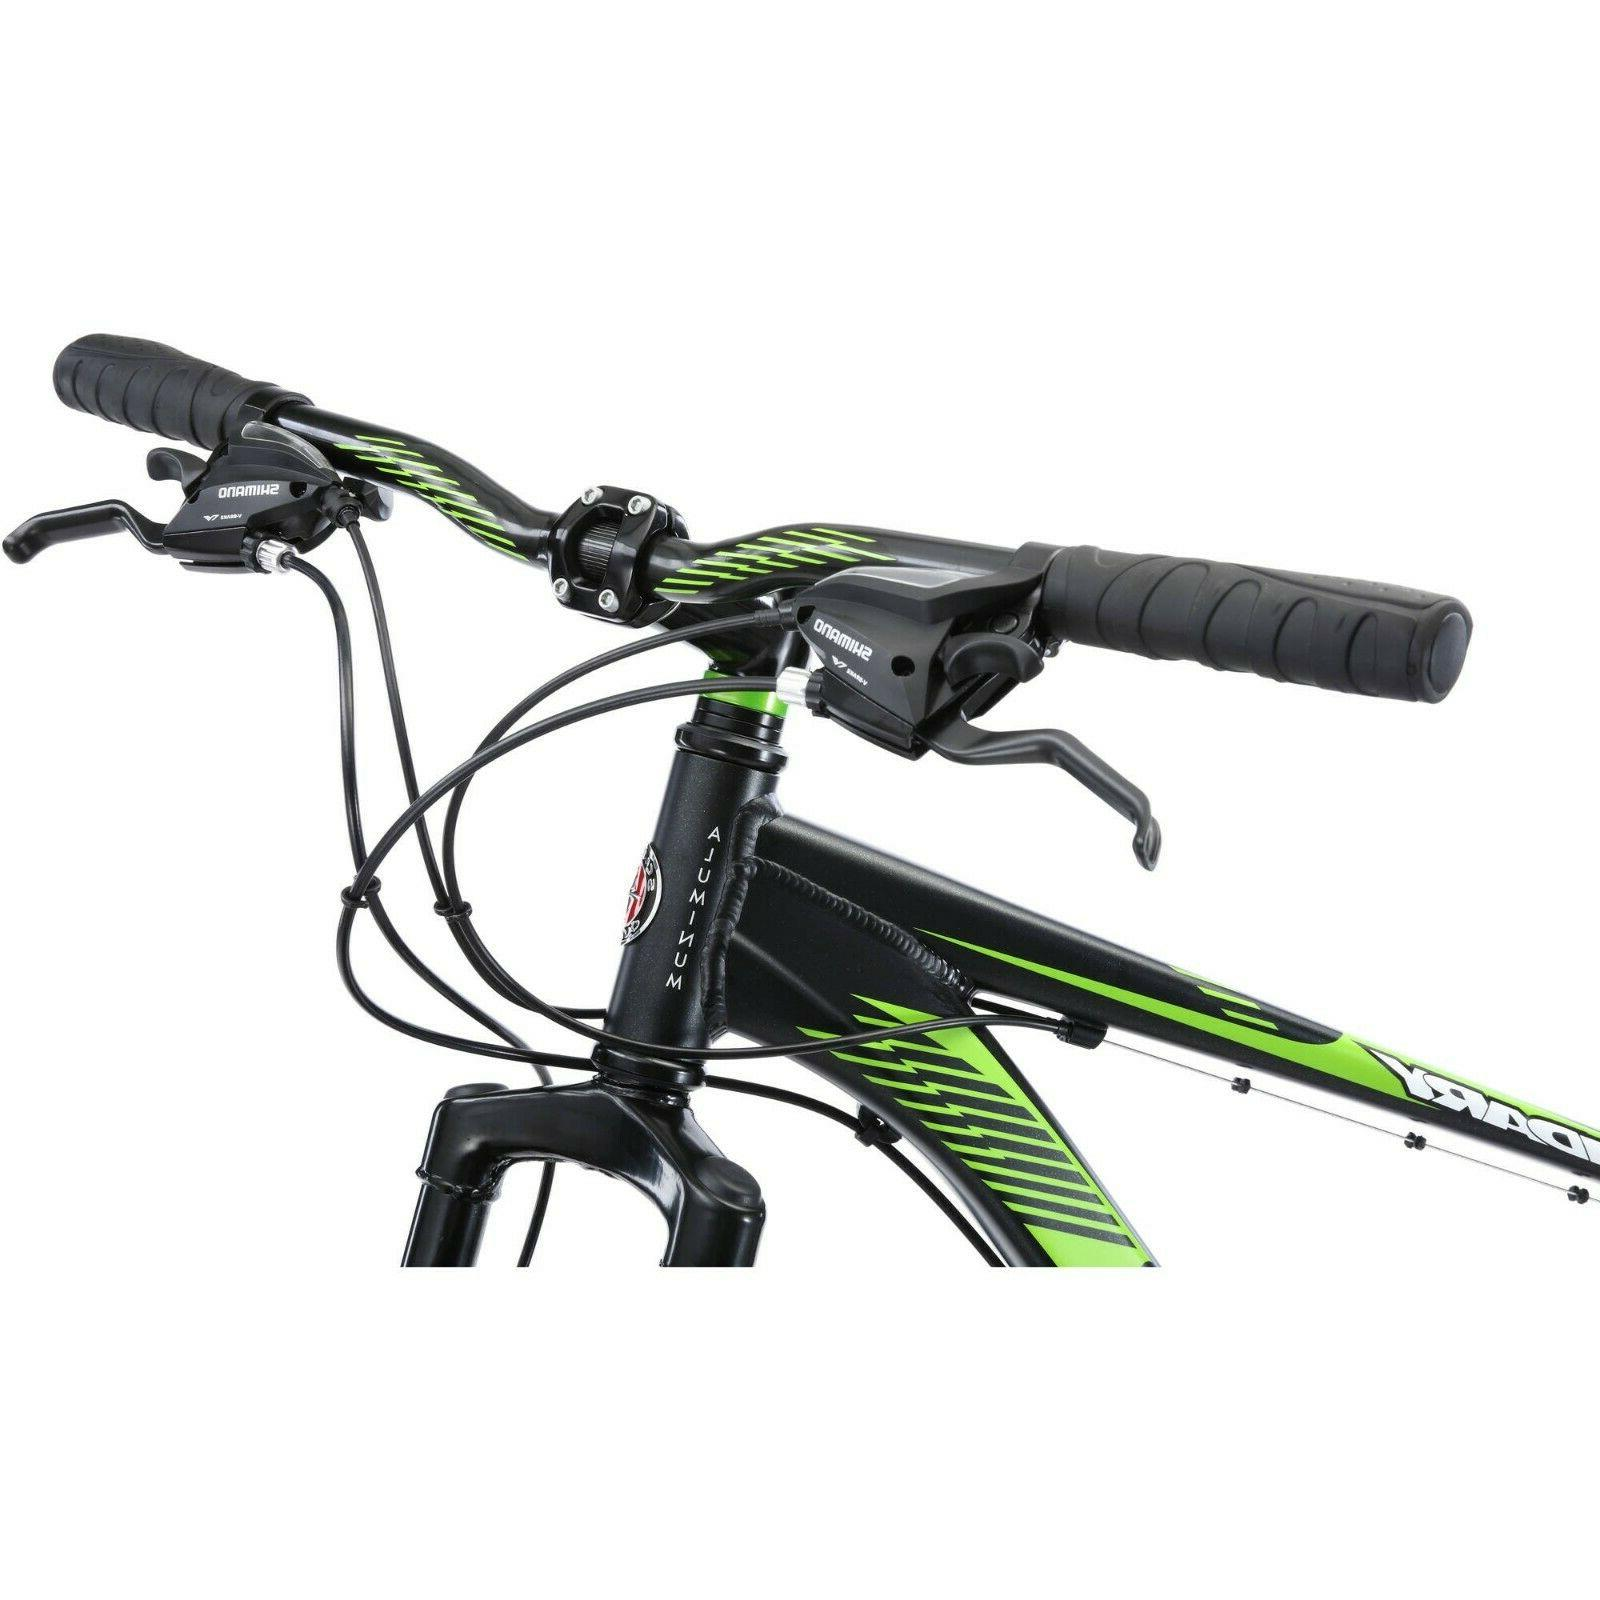 Mountain Bike Mens Schwinn Rugged Off Road Tires 29 Inch 21 Speed Bicycle Large